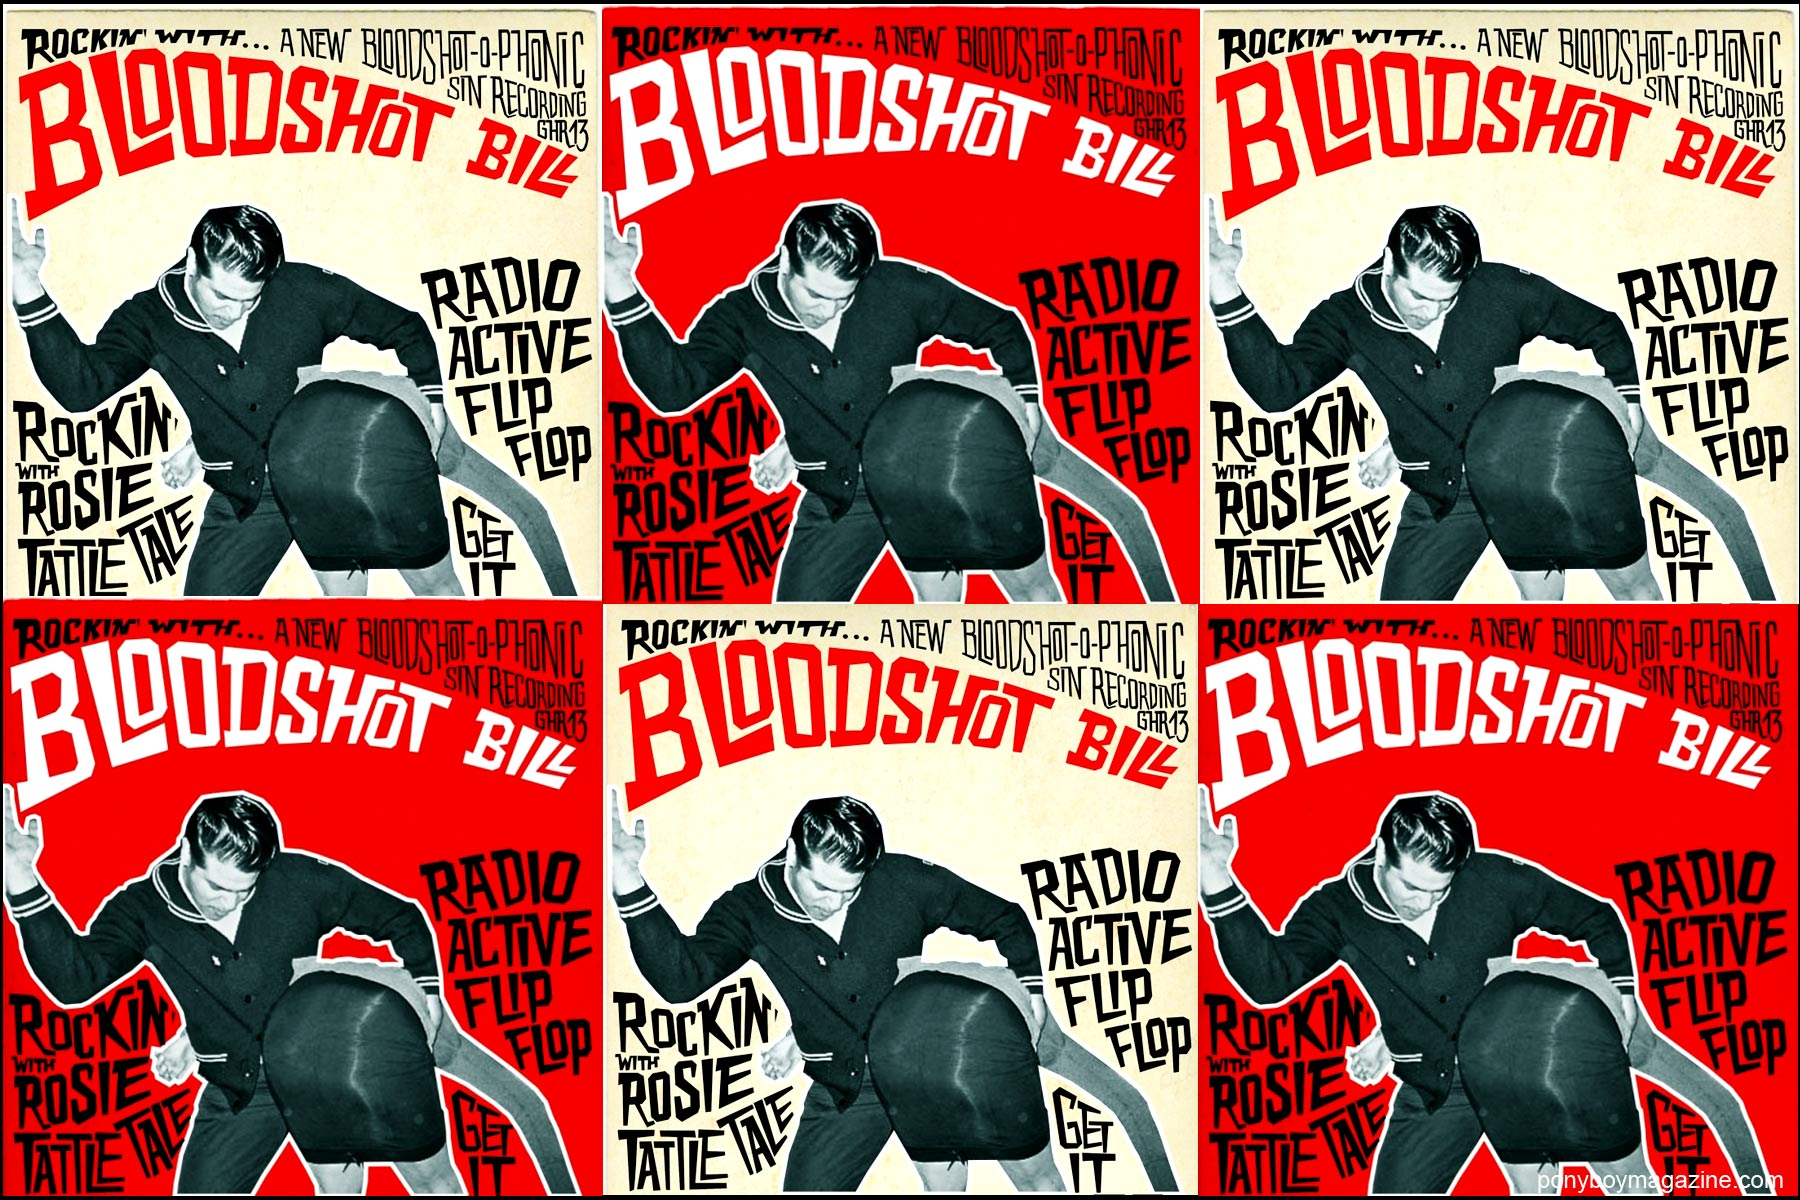 Bloodshot Bill album covers, a rockabilly artist with Norton Records, for Ponyboy Magazine in New York City.